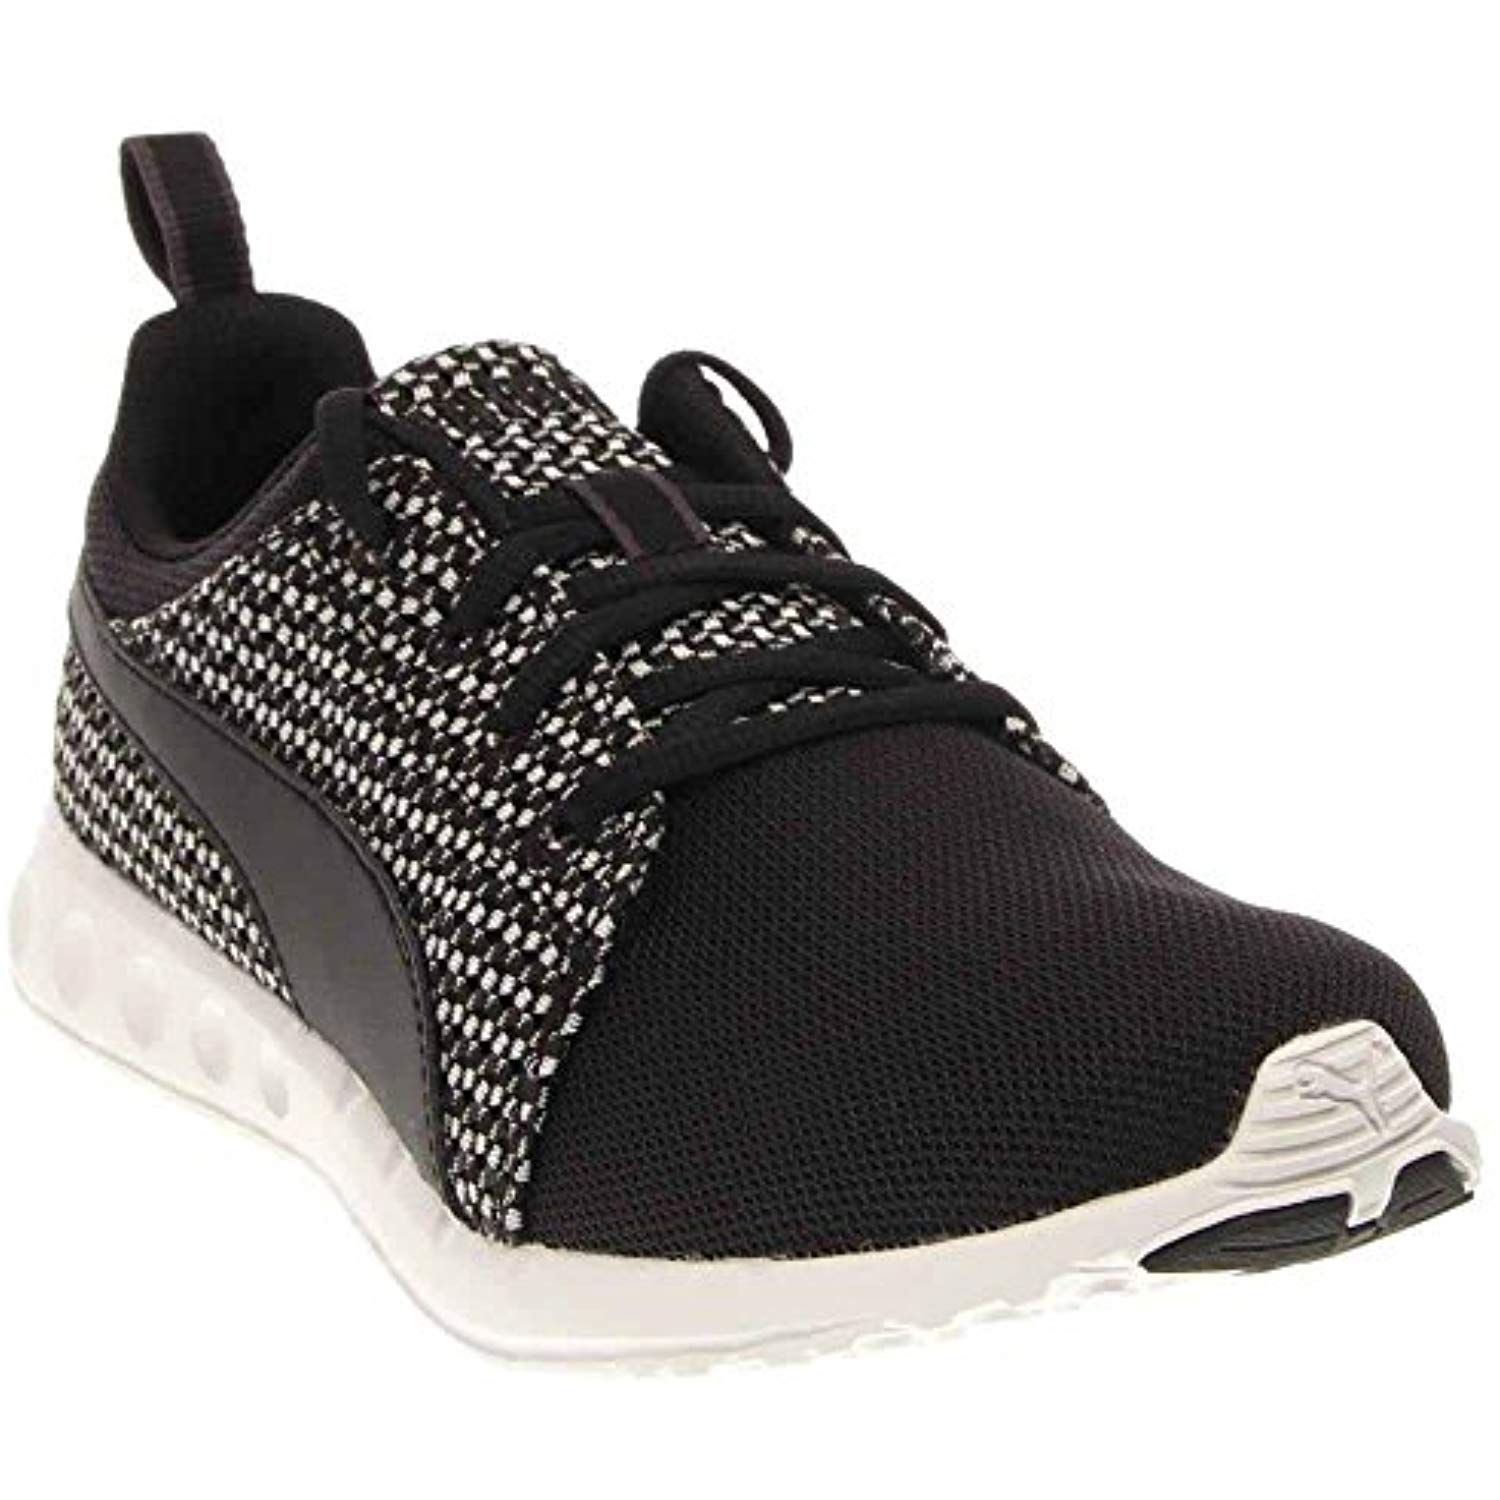 8e5dc8fedfb0 PUMA Men s Carson Runner Knit Lace-Up Fashion Sneaker   You can find more  details by visiting the image link. (This is an affiliate link)